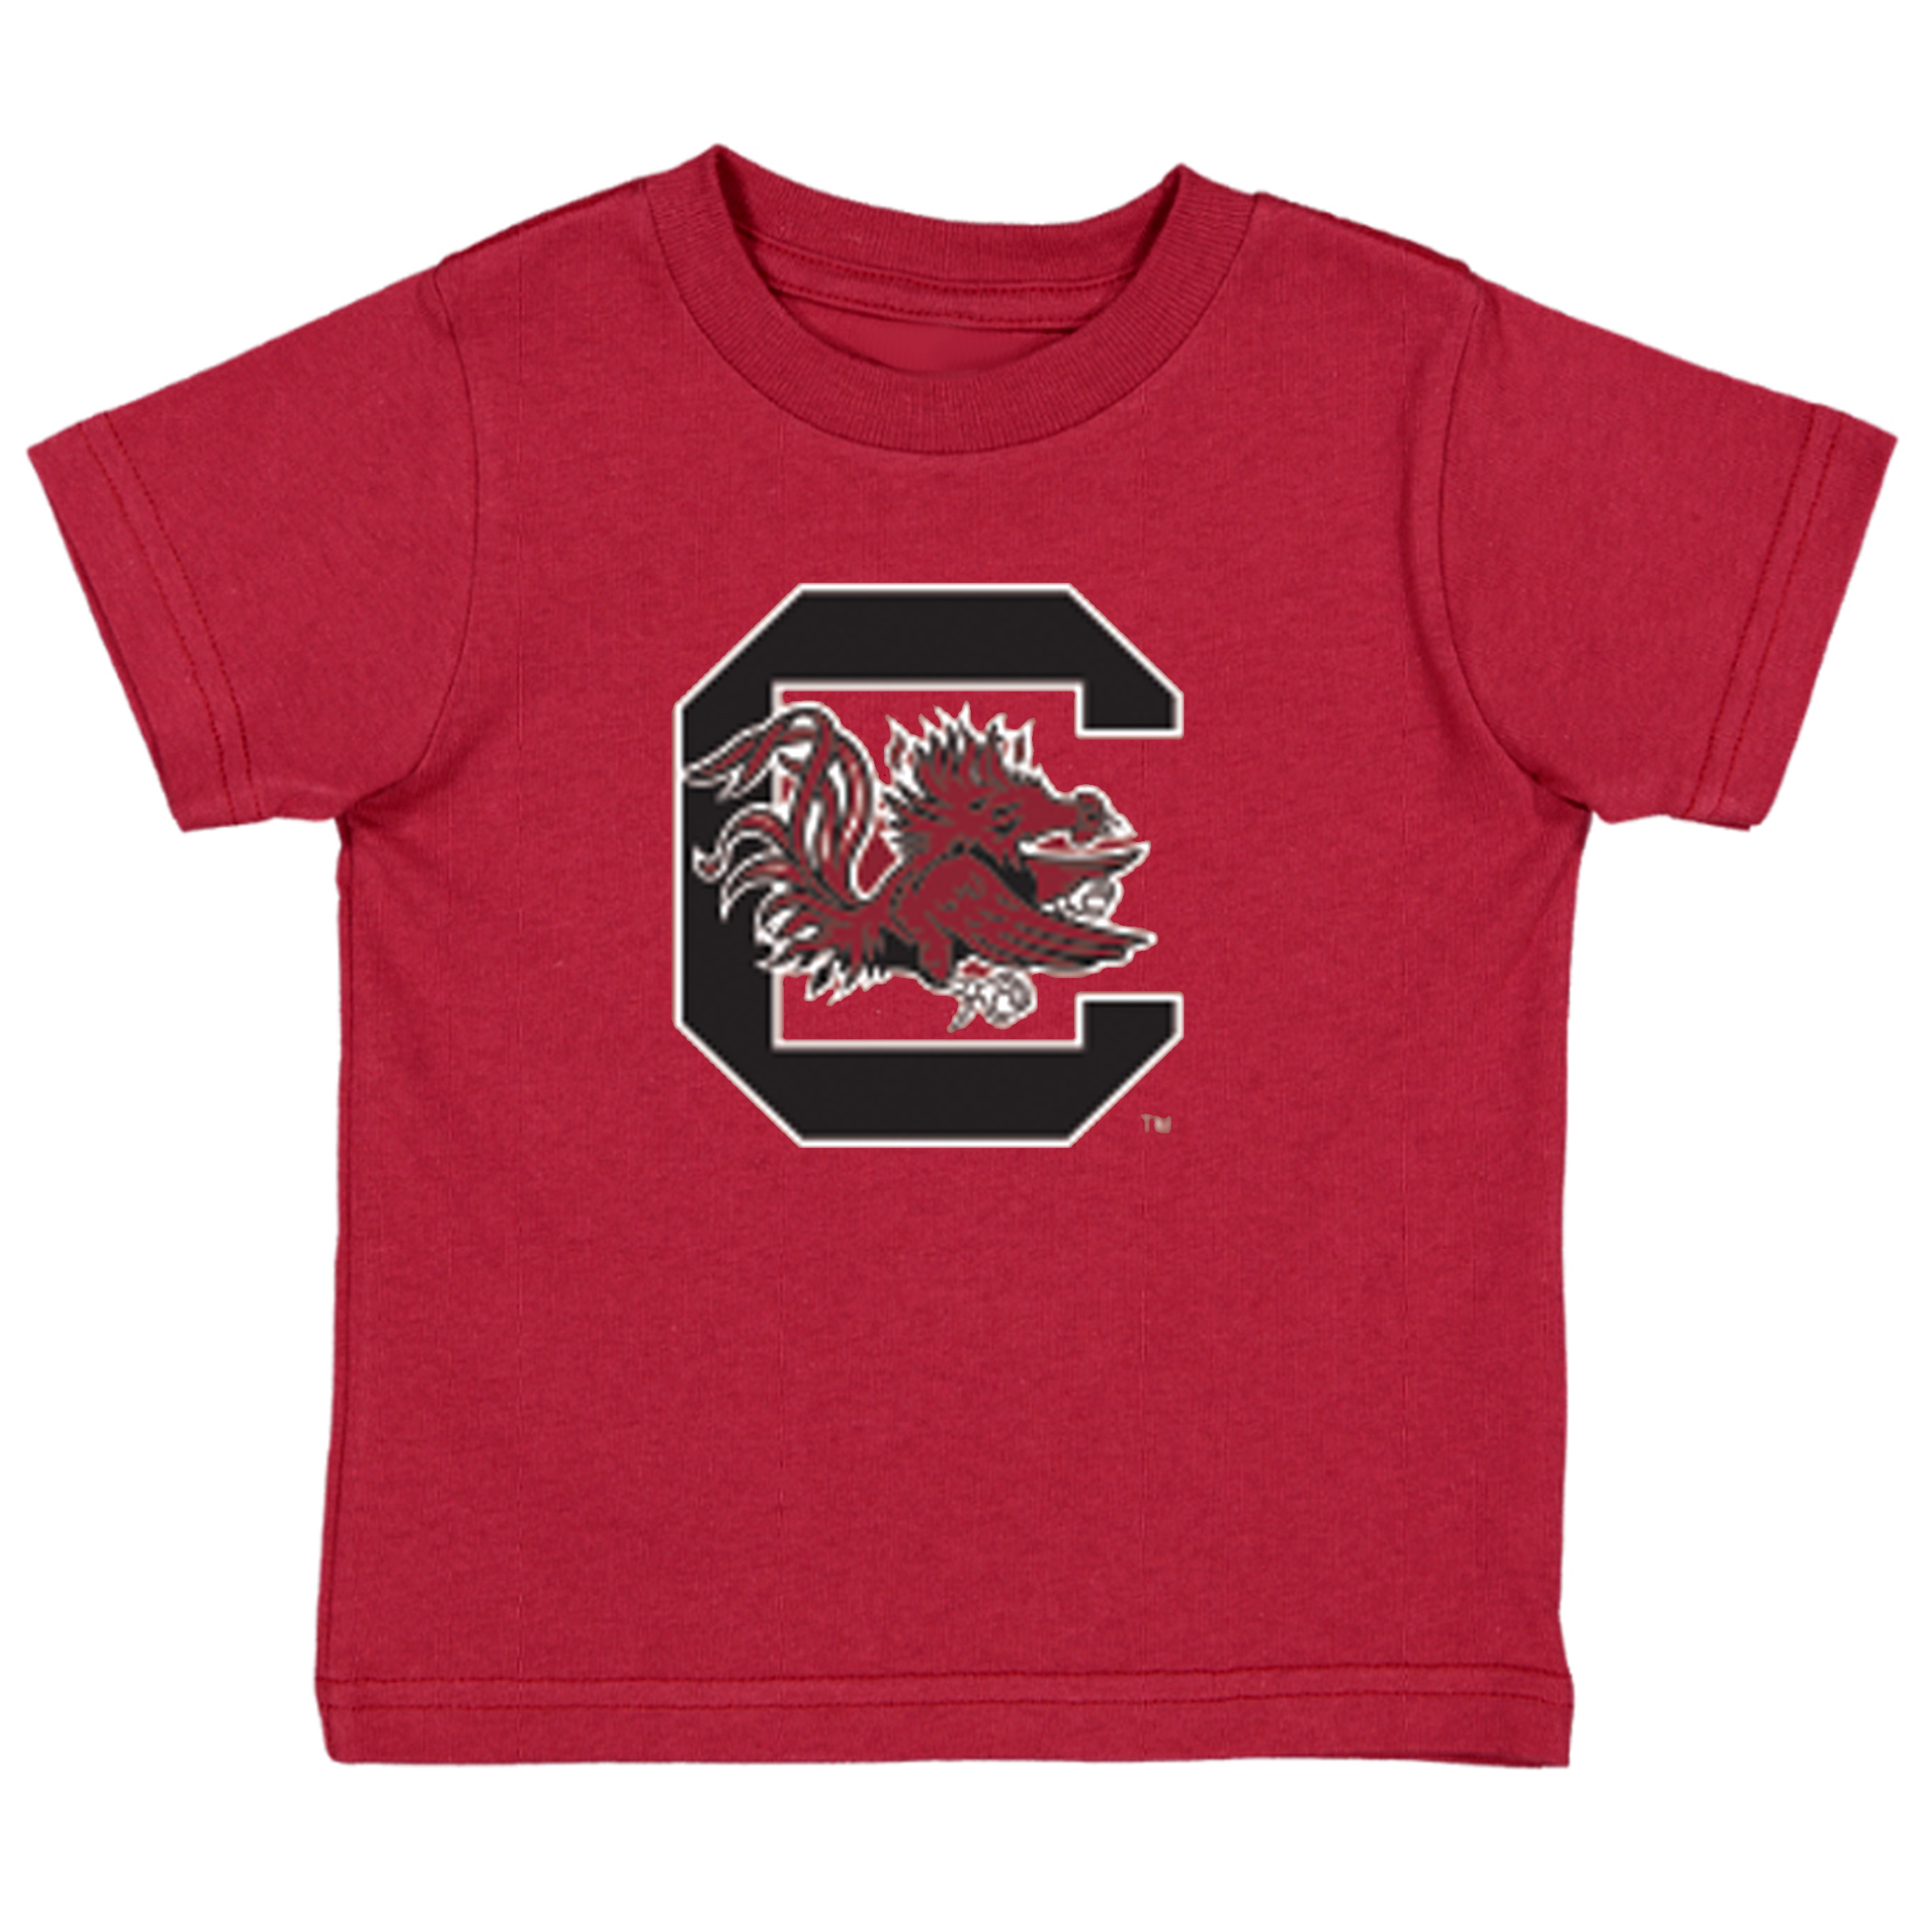 South Carolina Gamecock LOGO Infant/Toddler T-Shirt